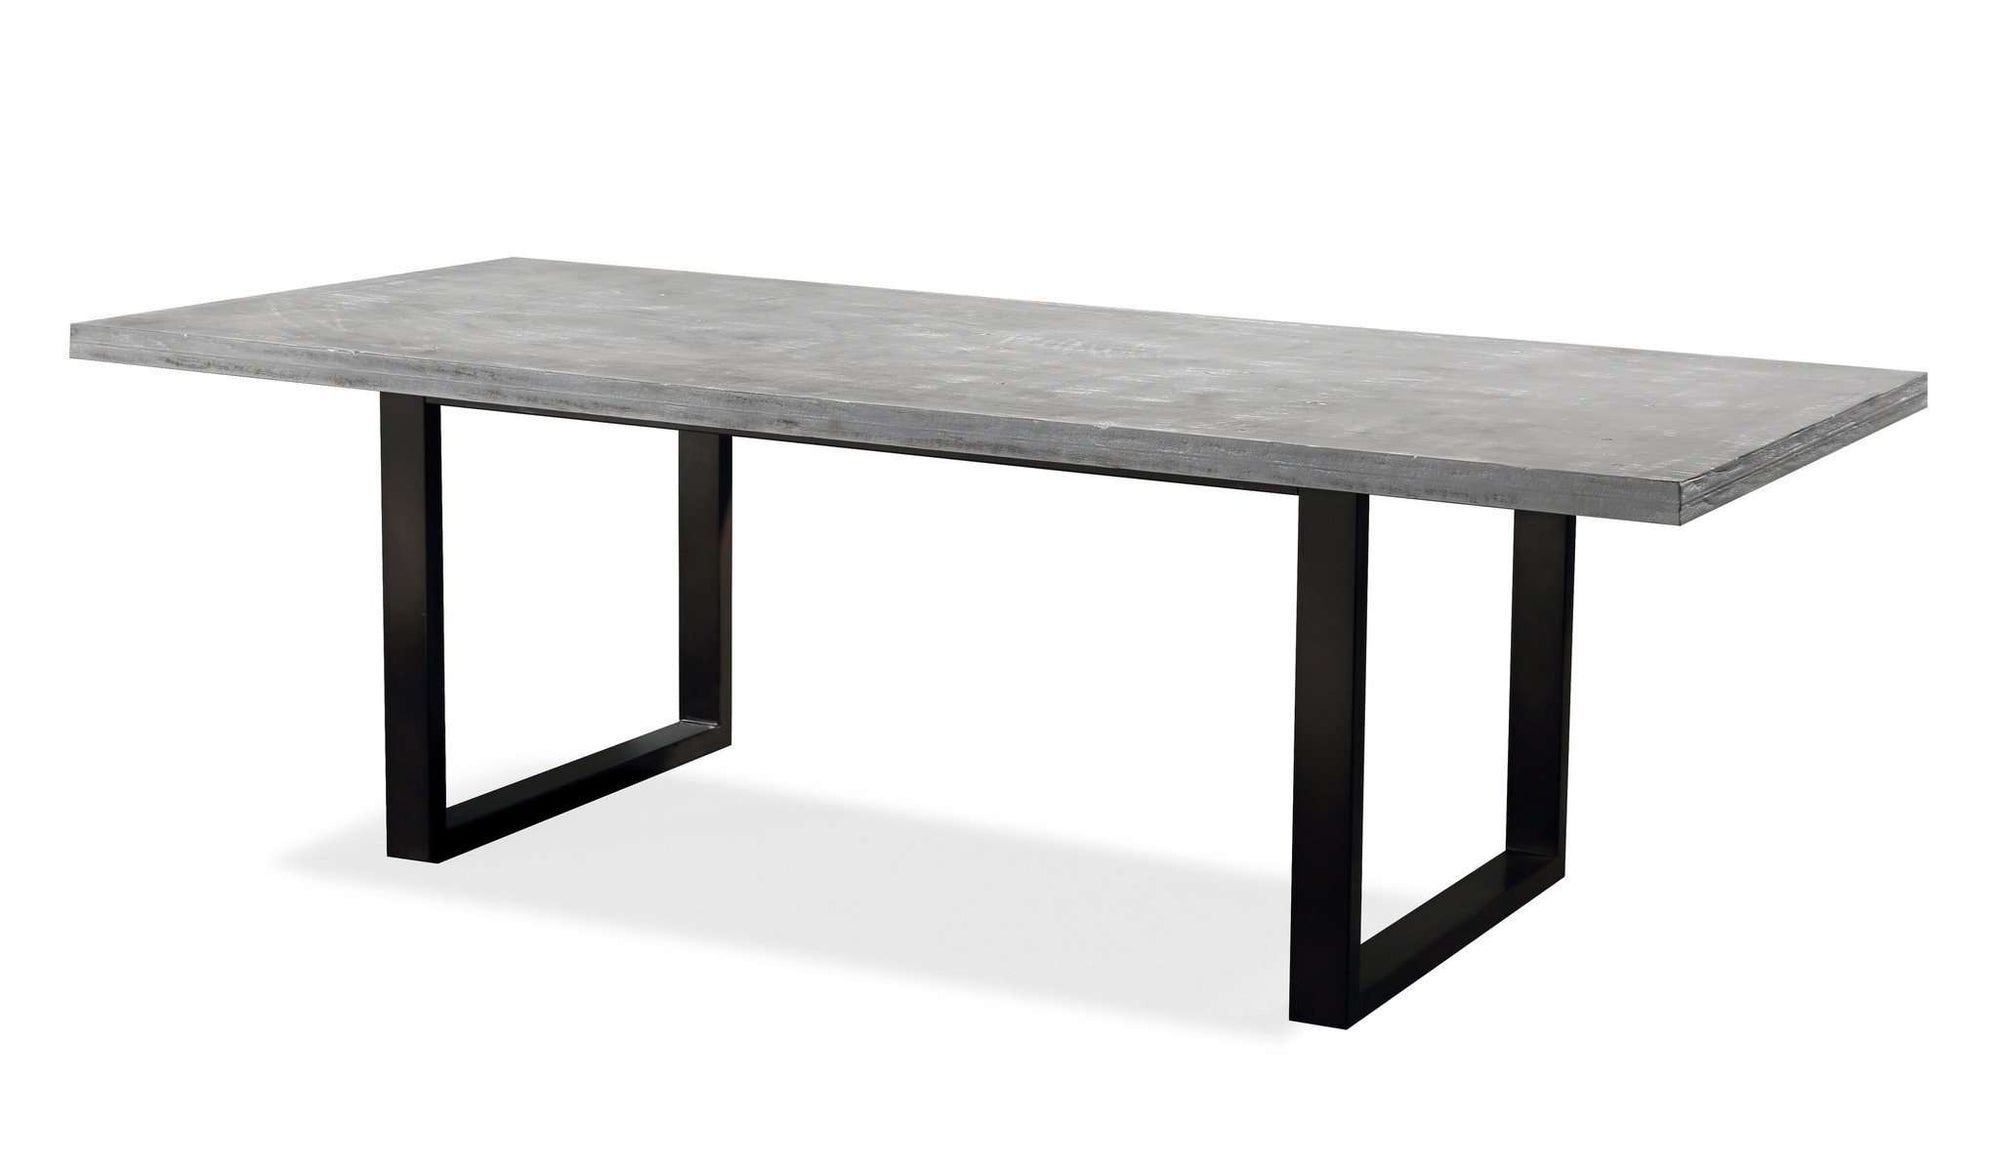 Tov-Urban Table-Table-MODTEMPO